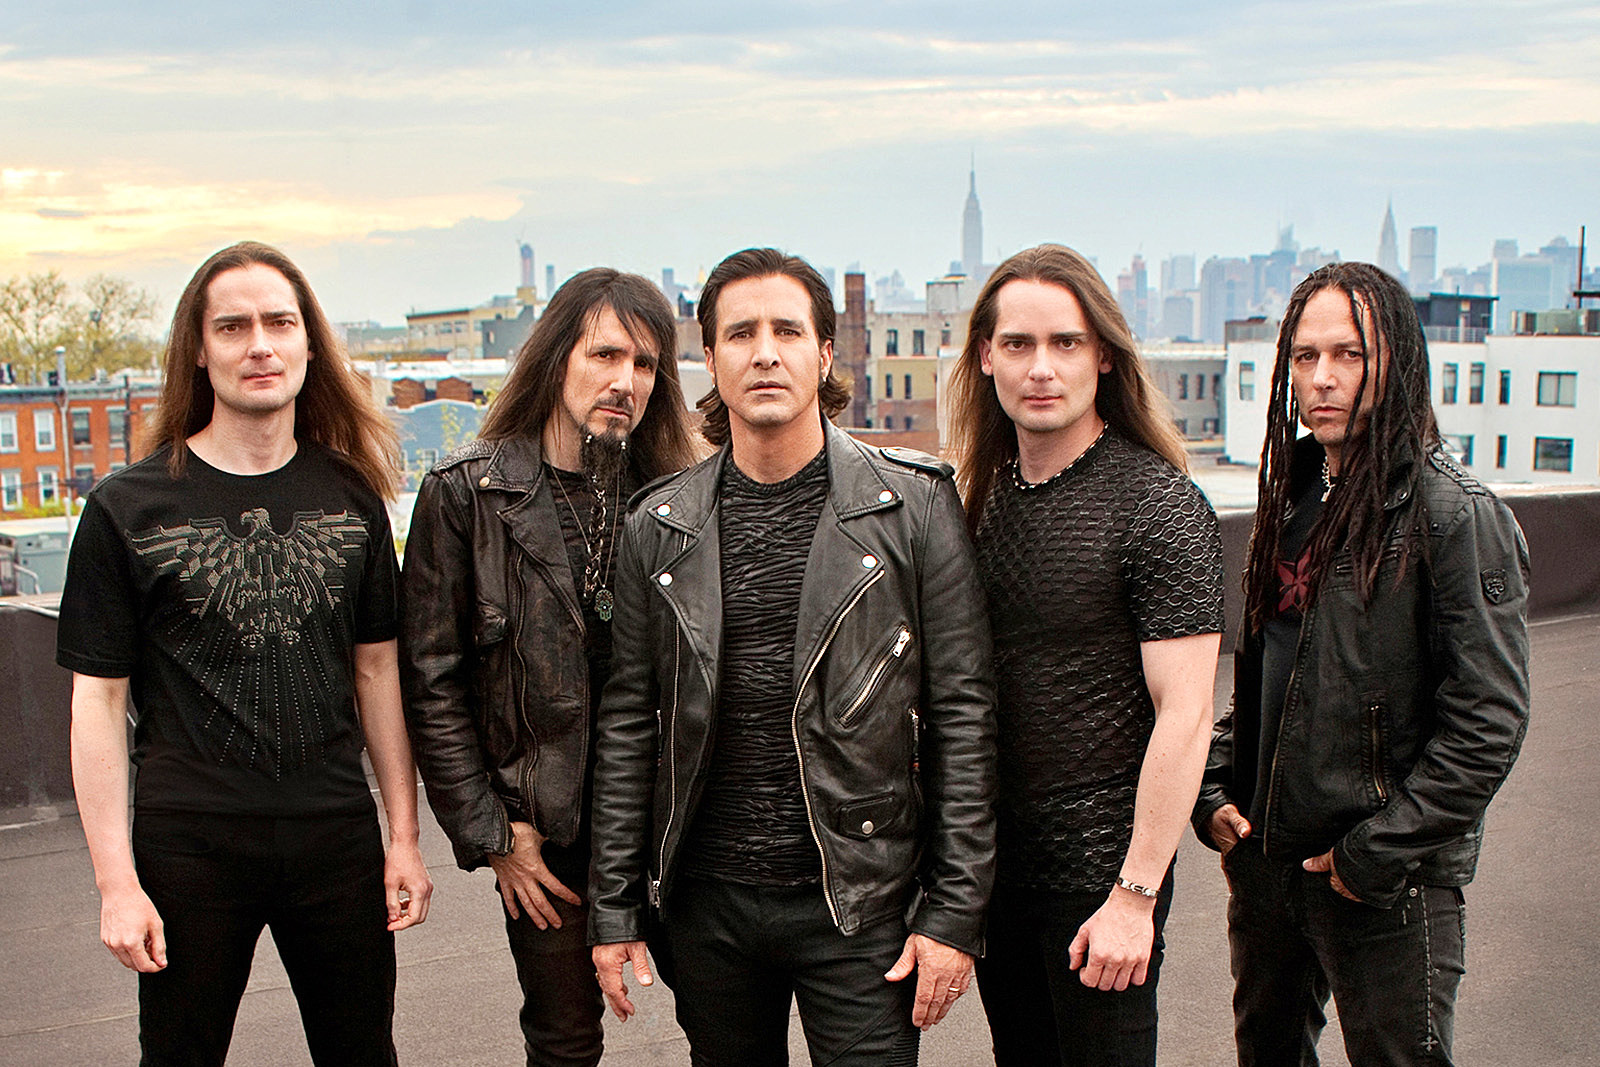 Scott Stapp Sued for Not Touring With Art of Anarchy